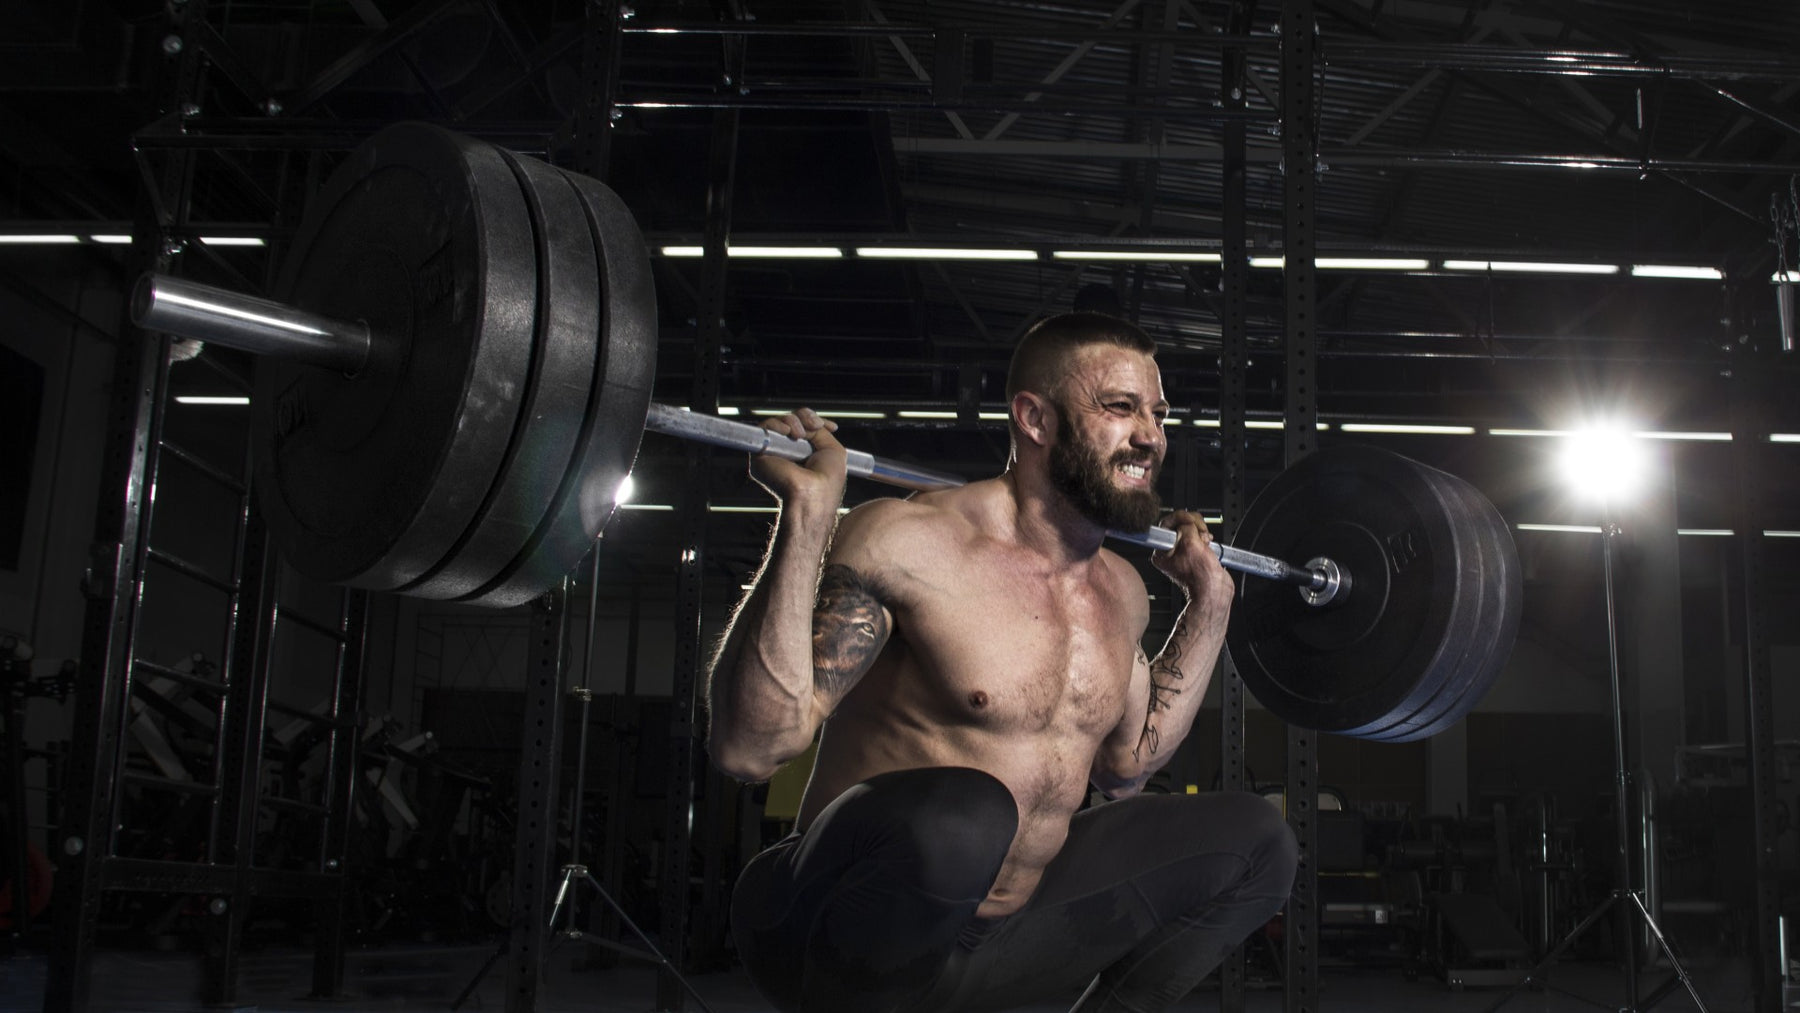 Steve Shaw's 20 Rep Squat Routine for Fast Mass